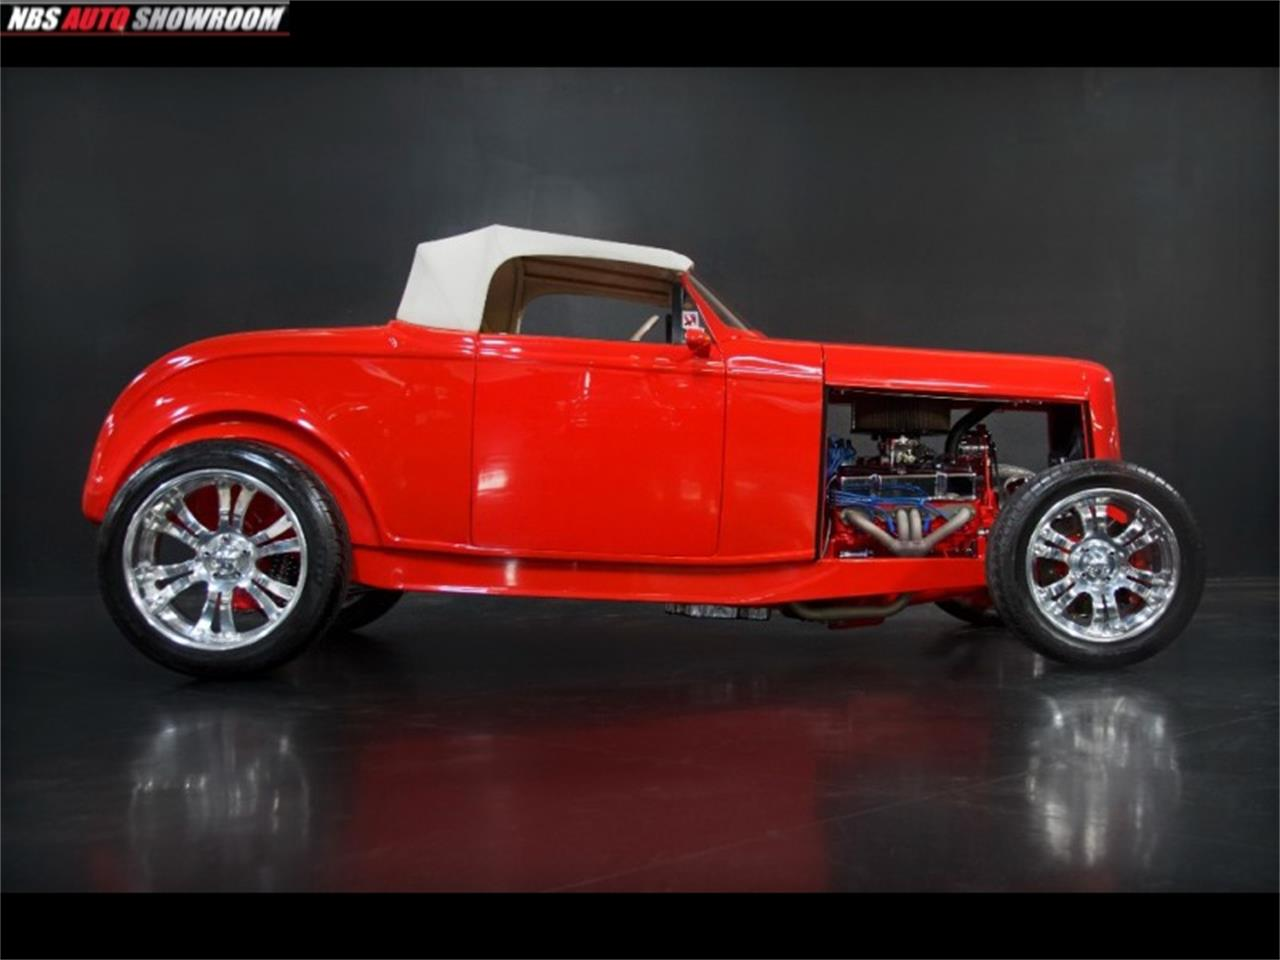 Large Picture of Classic '32 Ford Roadster located in California - $37,546.00 Offered by NBS Auto Showroom - QY4R